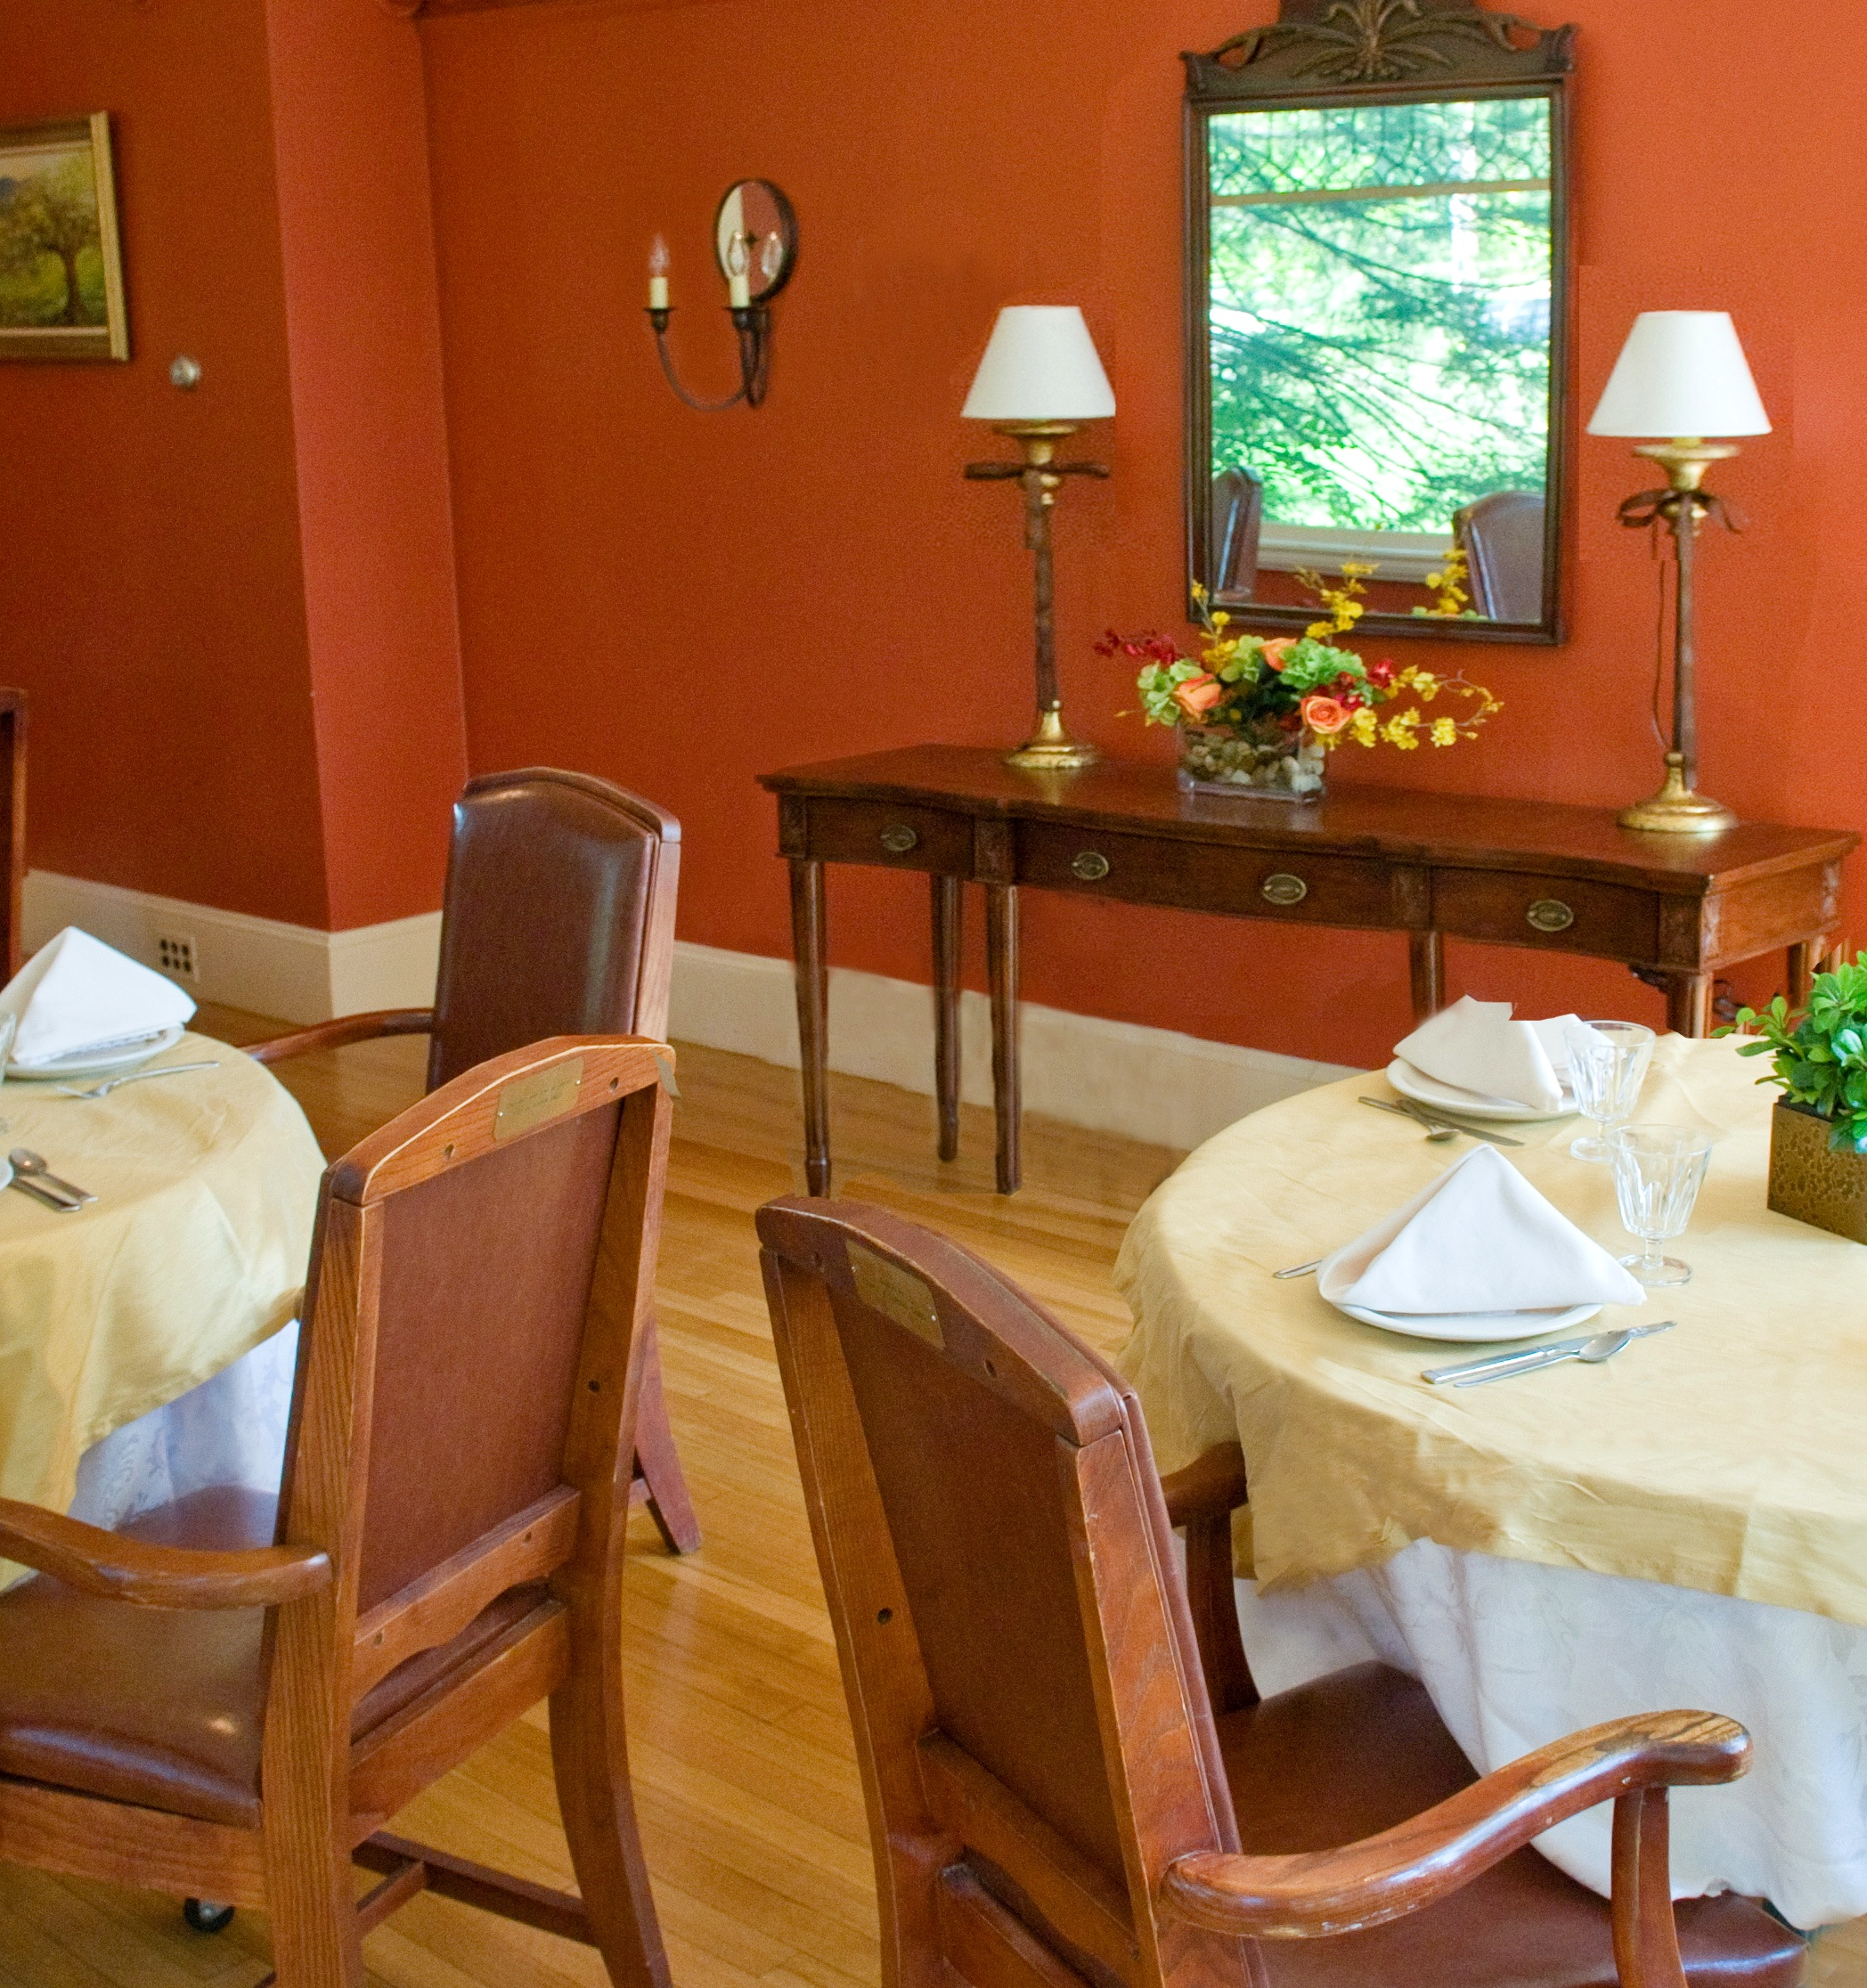 Red tones in a dining room stimulate the appetite as well as conversation.